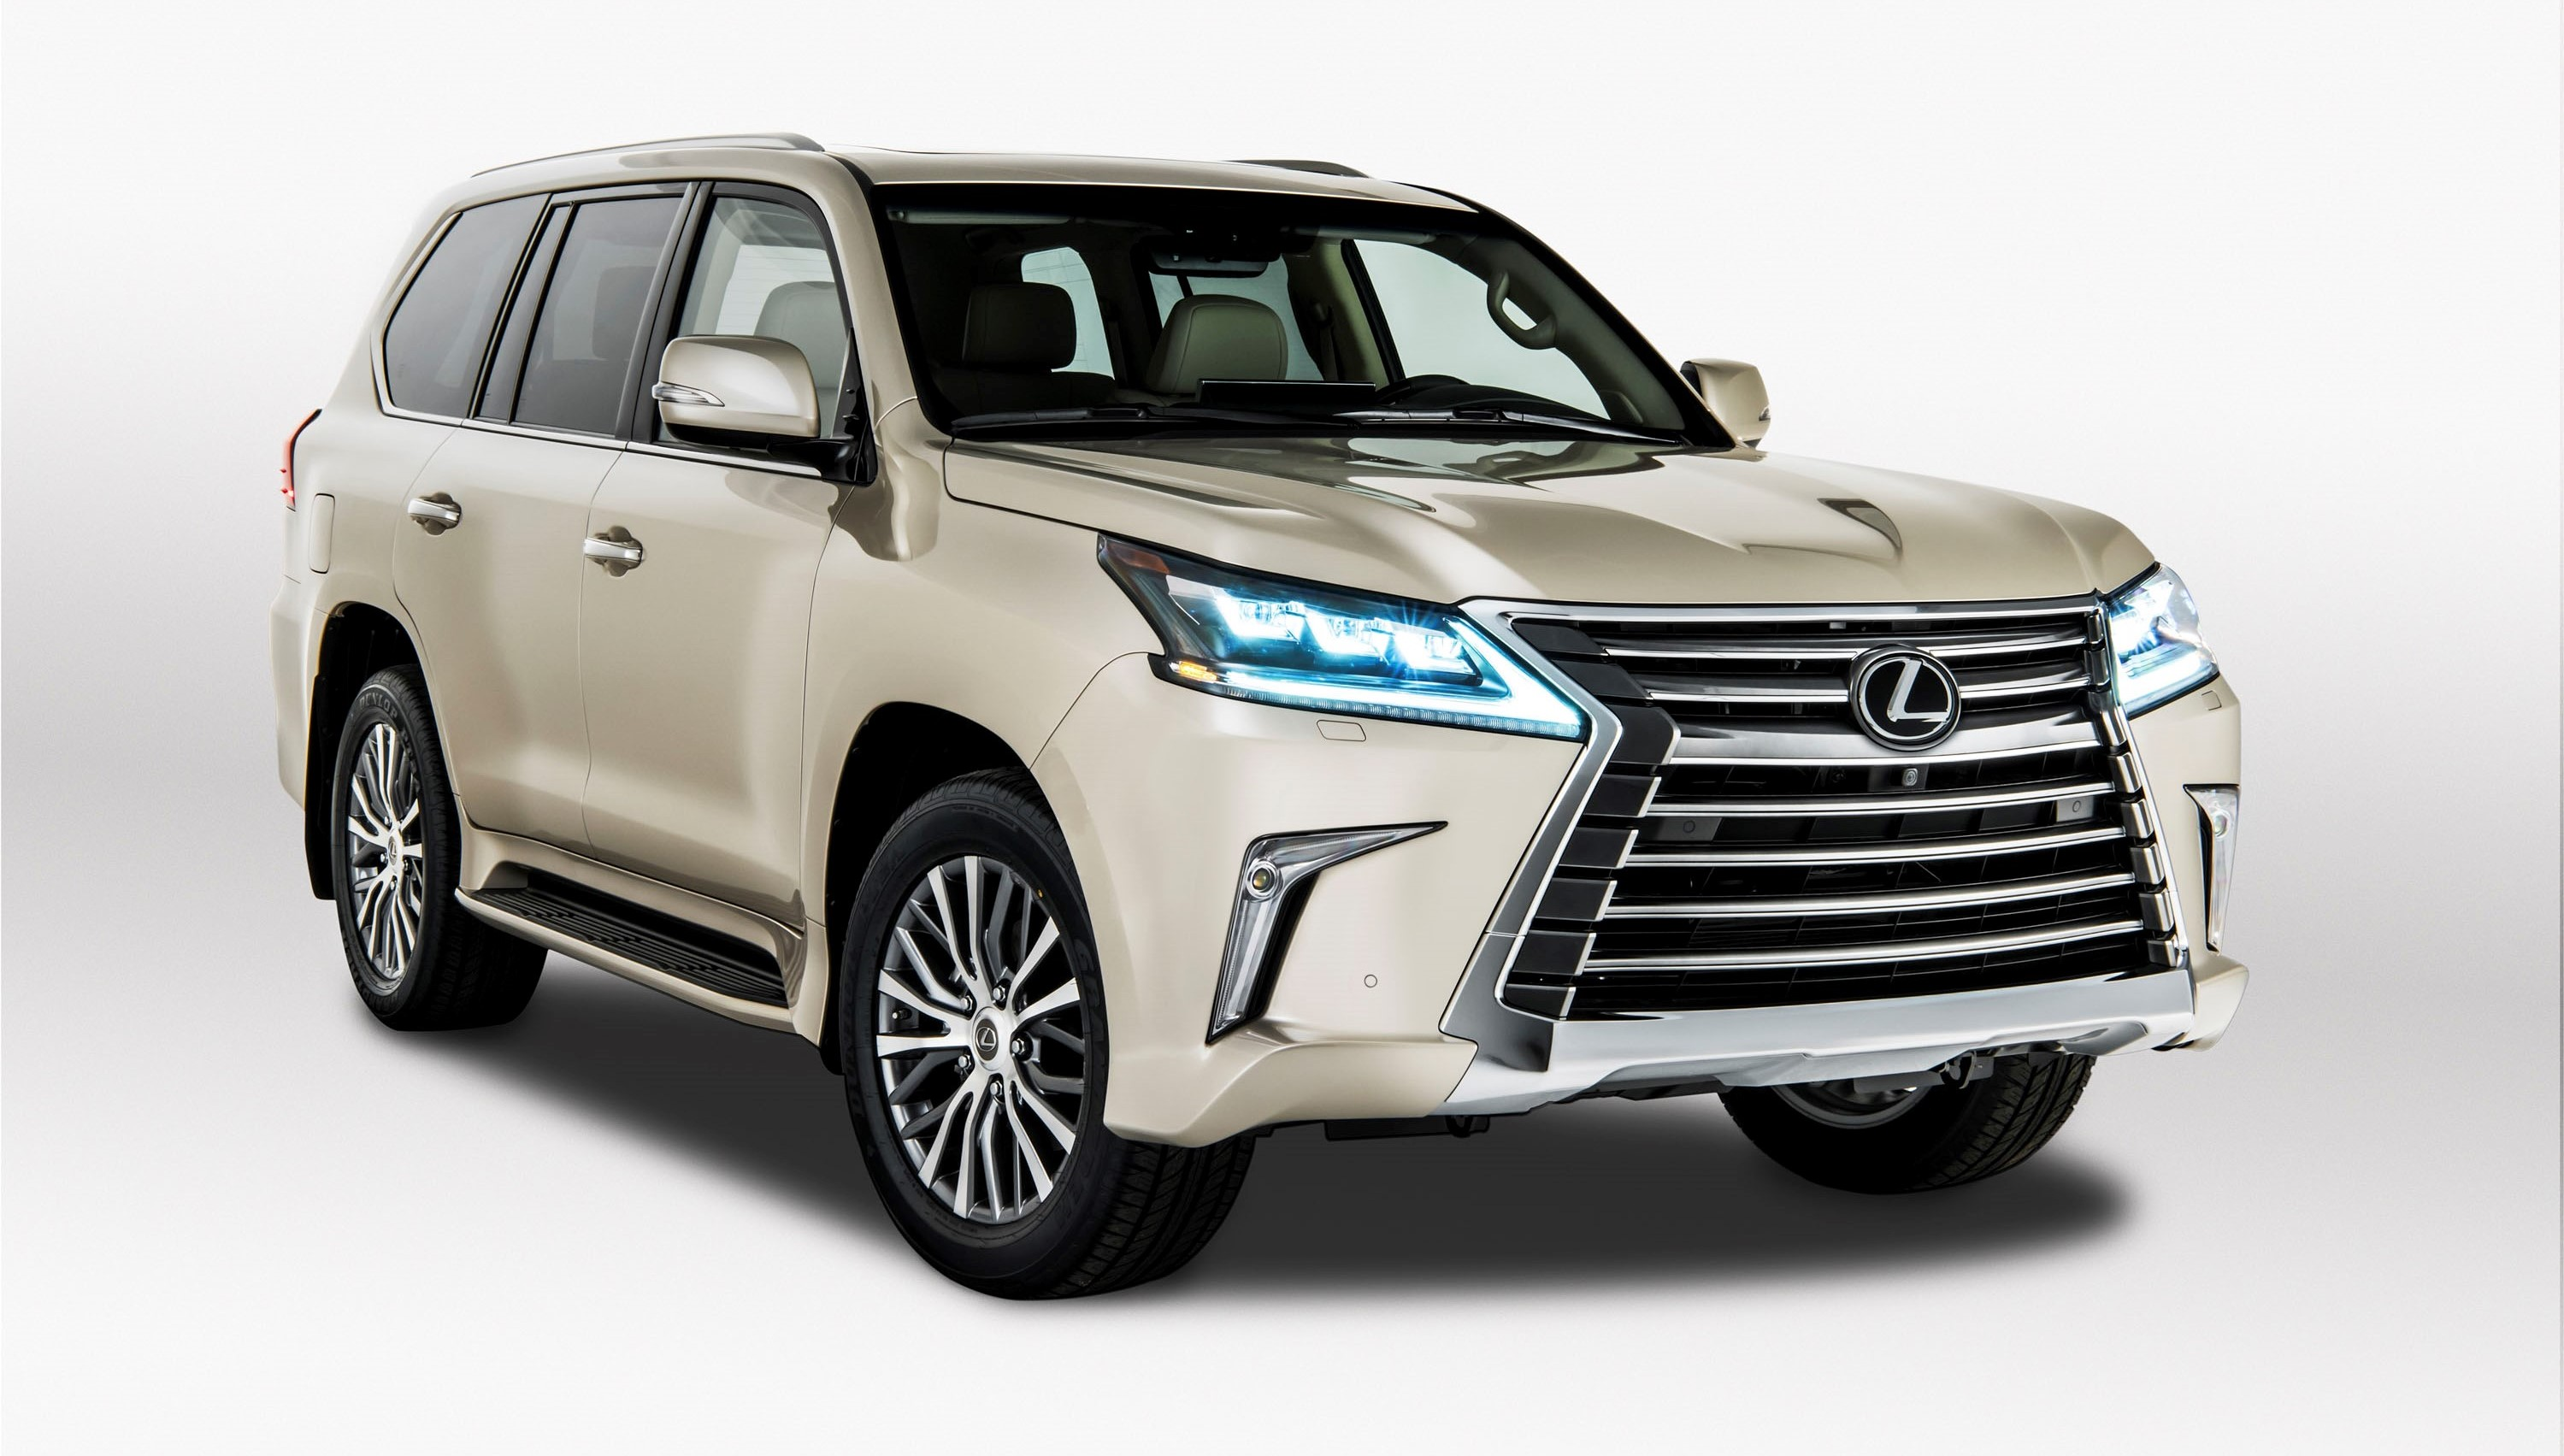 Bmw With 3Rd Row Seating >> Eject-O Seat-O: 2019 Lexus LX Drops Third Row And $5,000 ...